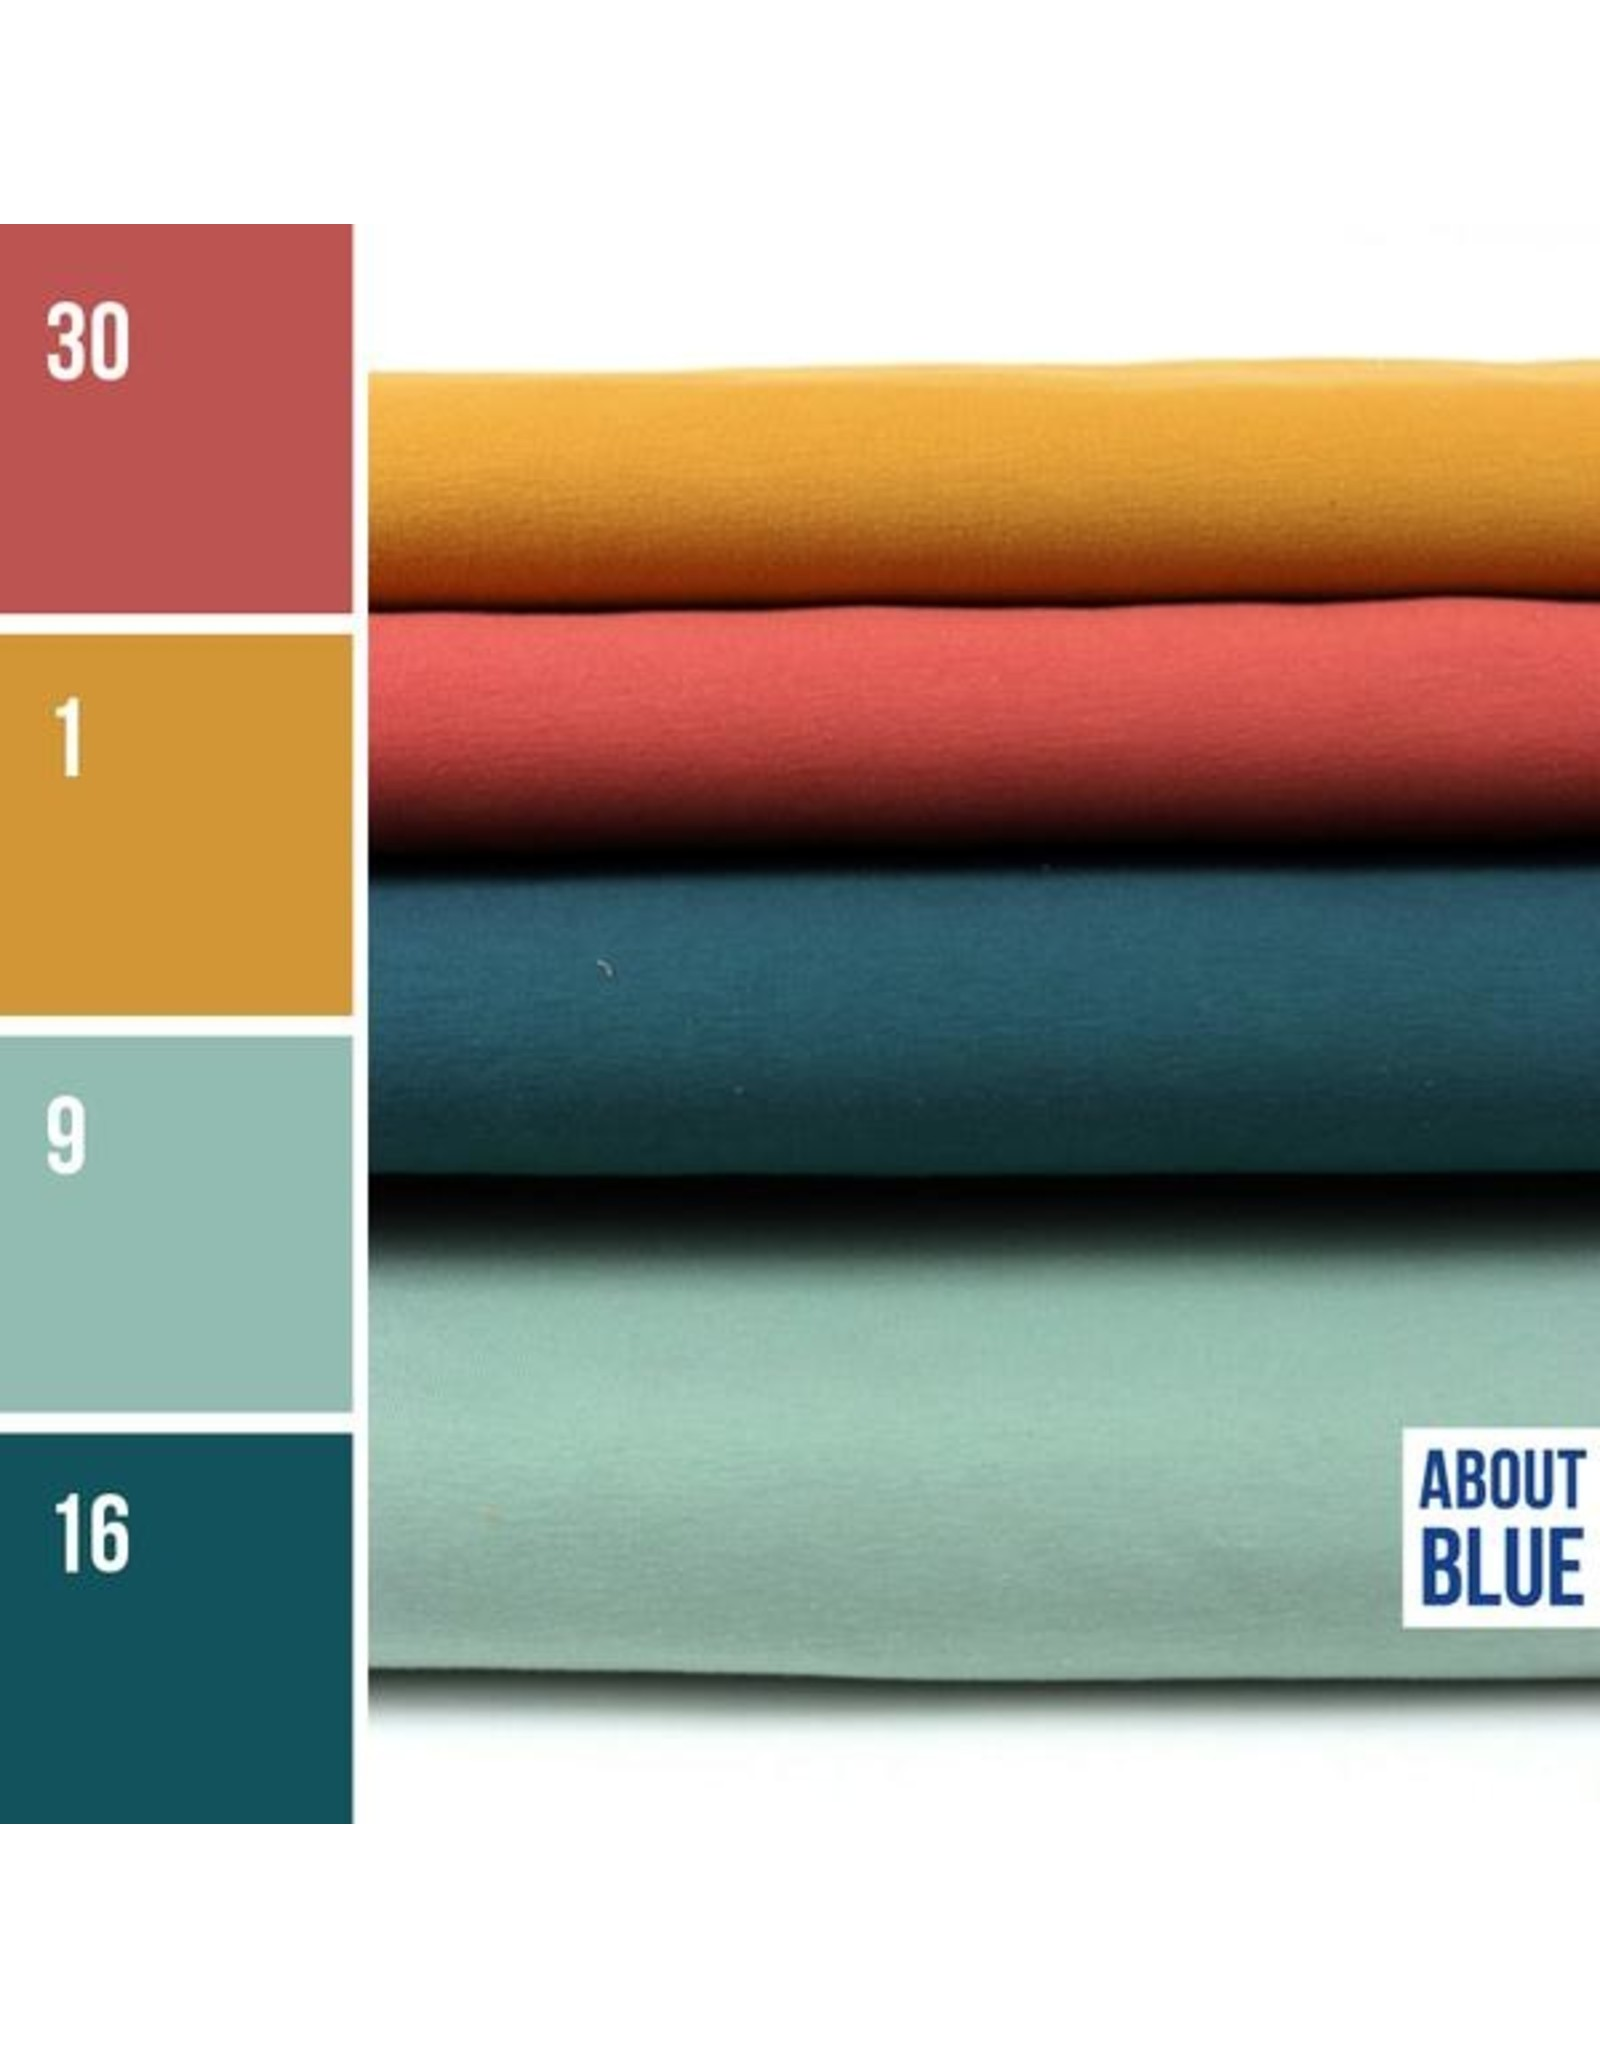 About Blue Fabrics French Terry Uni 30 Canyon Rose